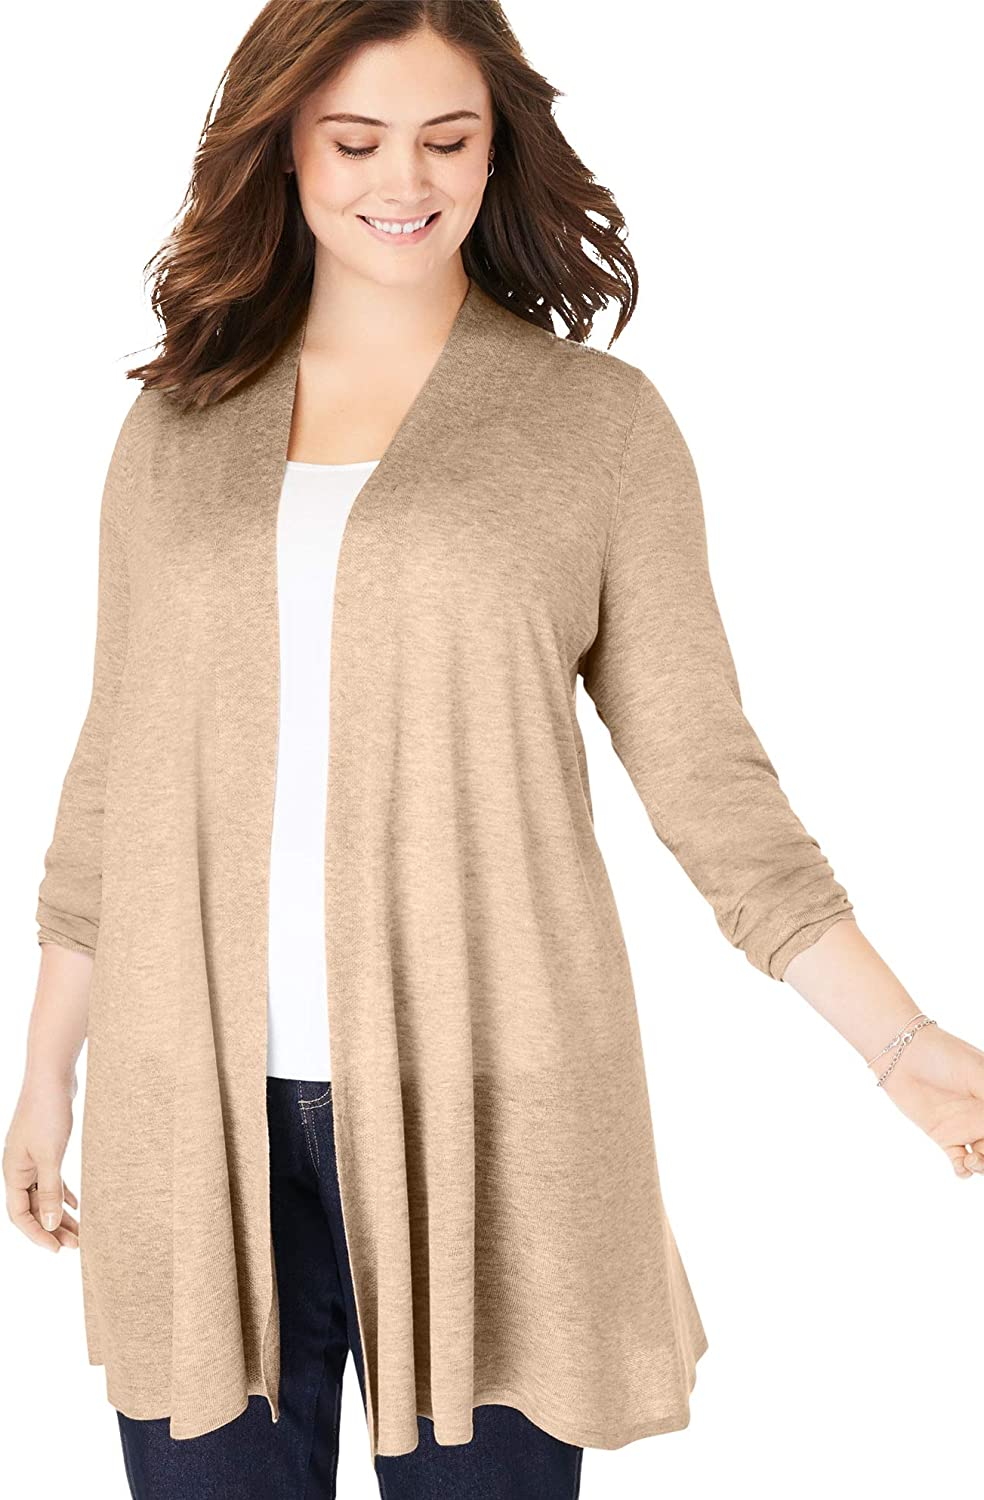 Woman Within Women's Plus Size Lightweight Open Front Cardigan Sweater